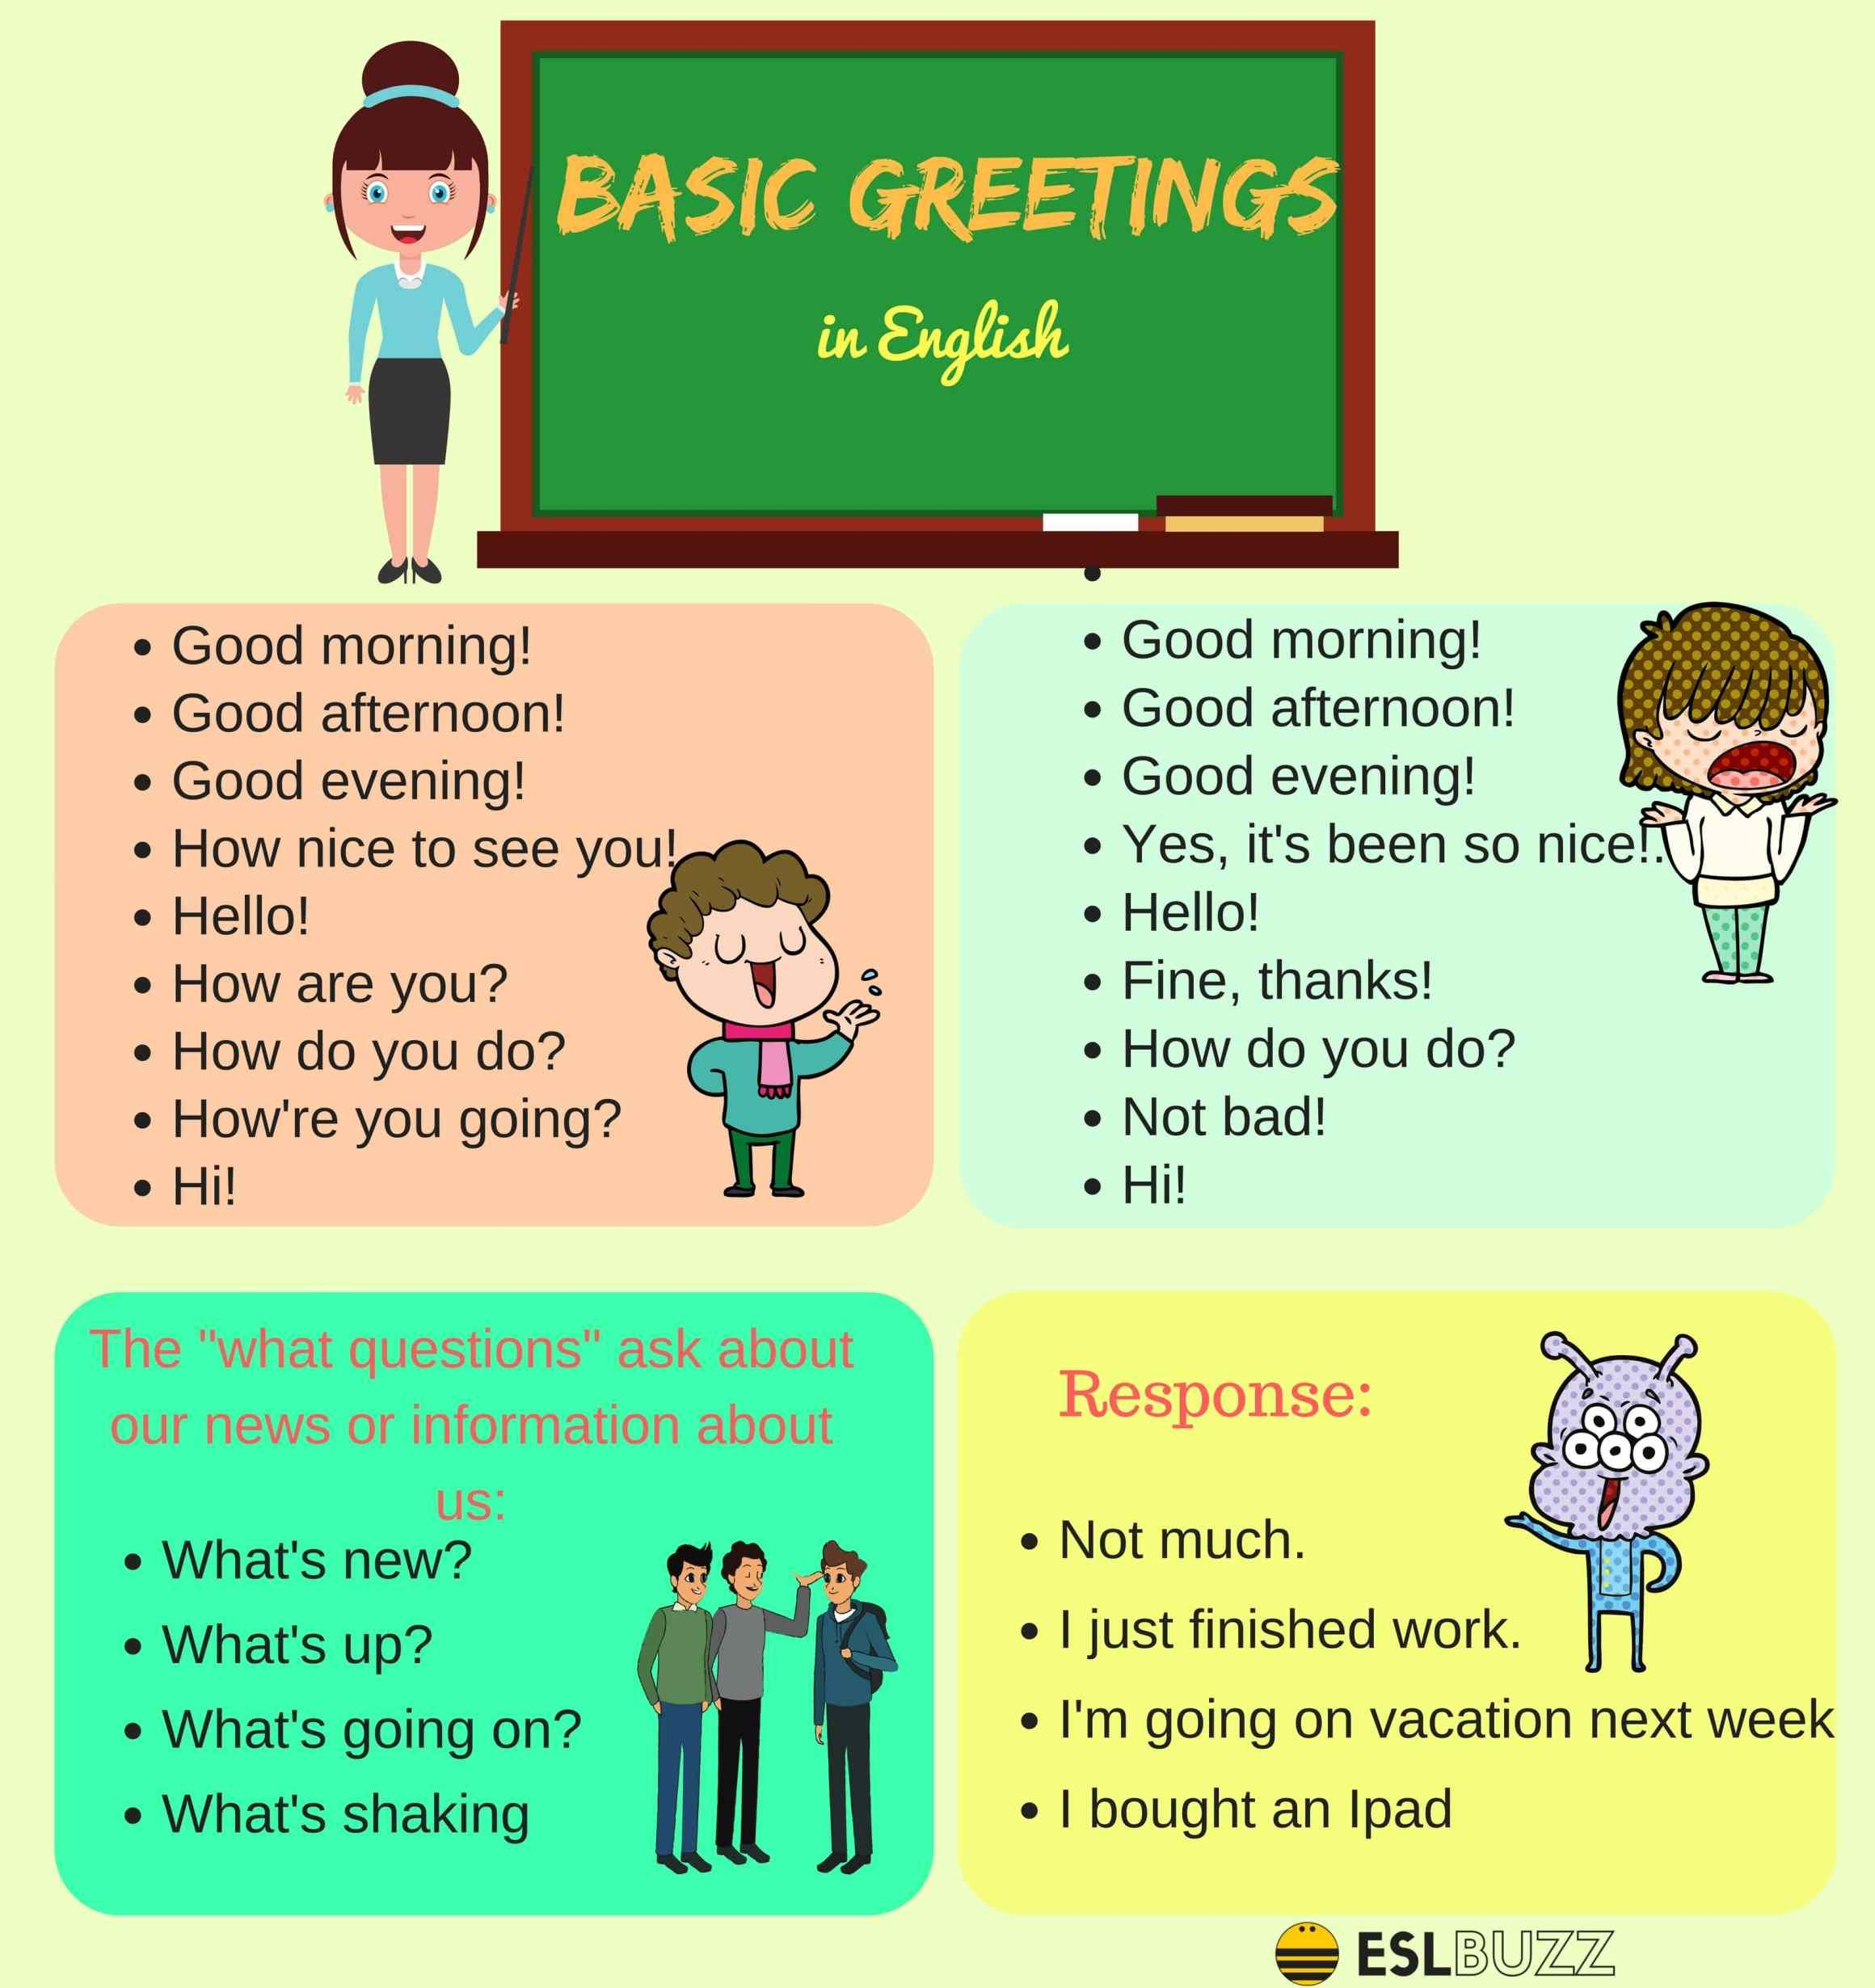 Basic greetings 22 english pinterest english english lessons lets learn the formal and informal greetings in english kristyandbryce Images